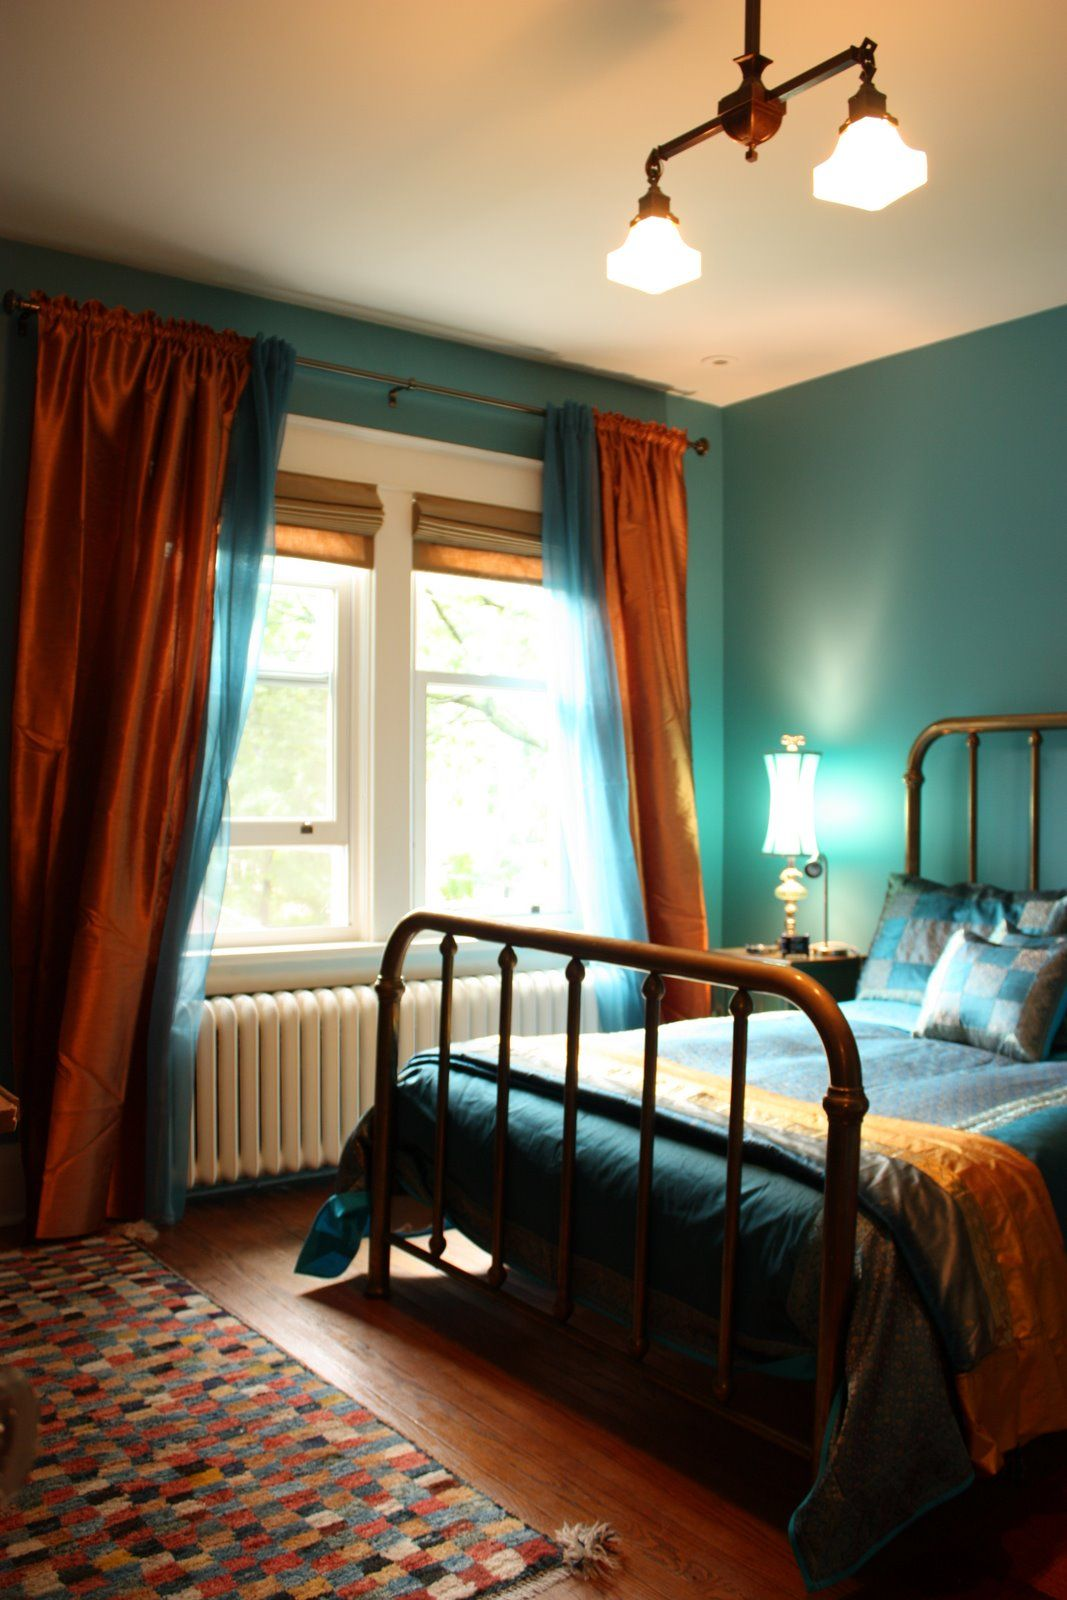 Bedroom Done In Teal And Copper A Mix Of Bohemian Chic And Turn Of The Century Antiques Jane